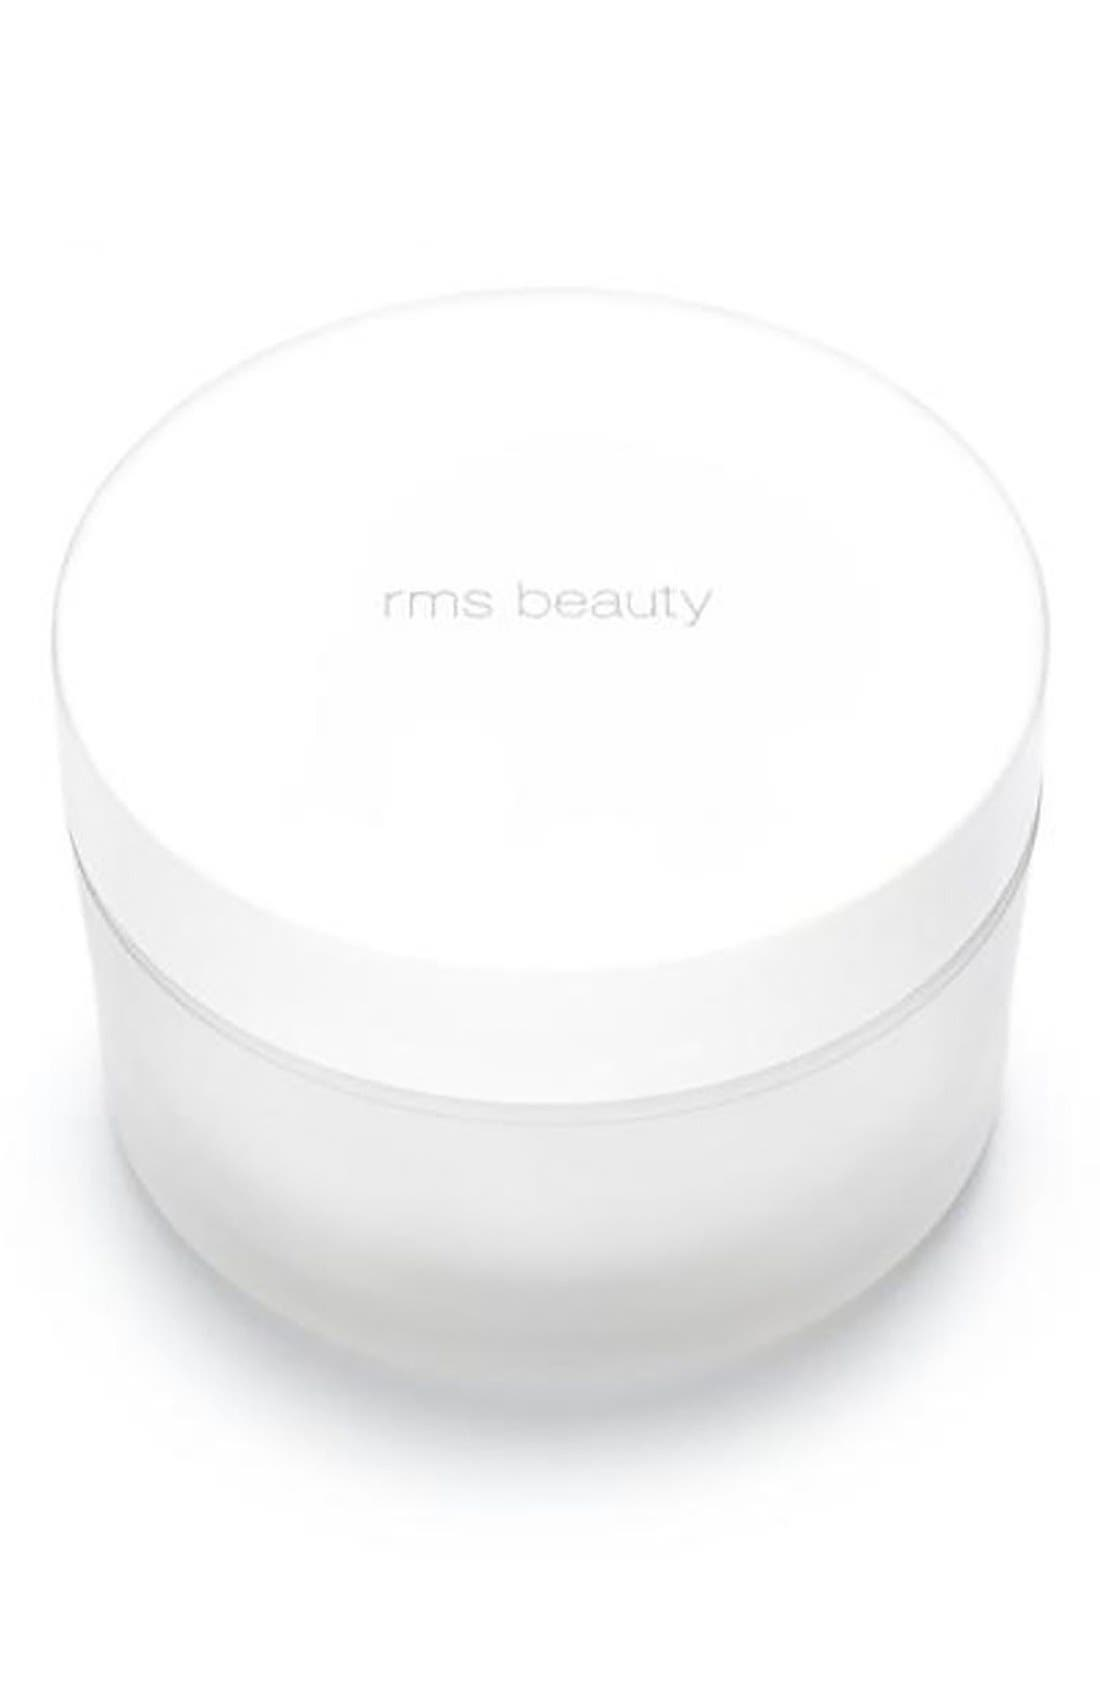 RMS Beauty Raw Coconut Cream